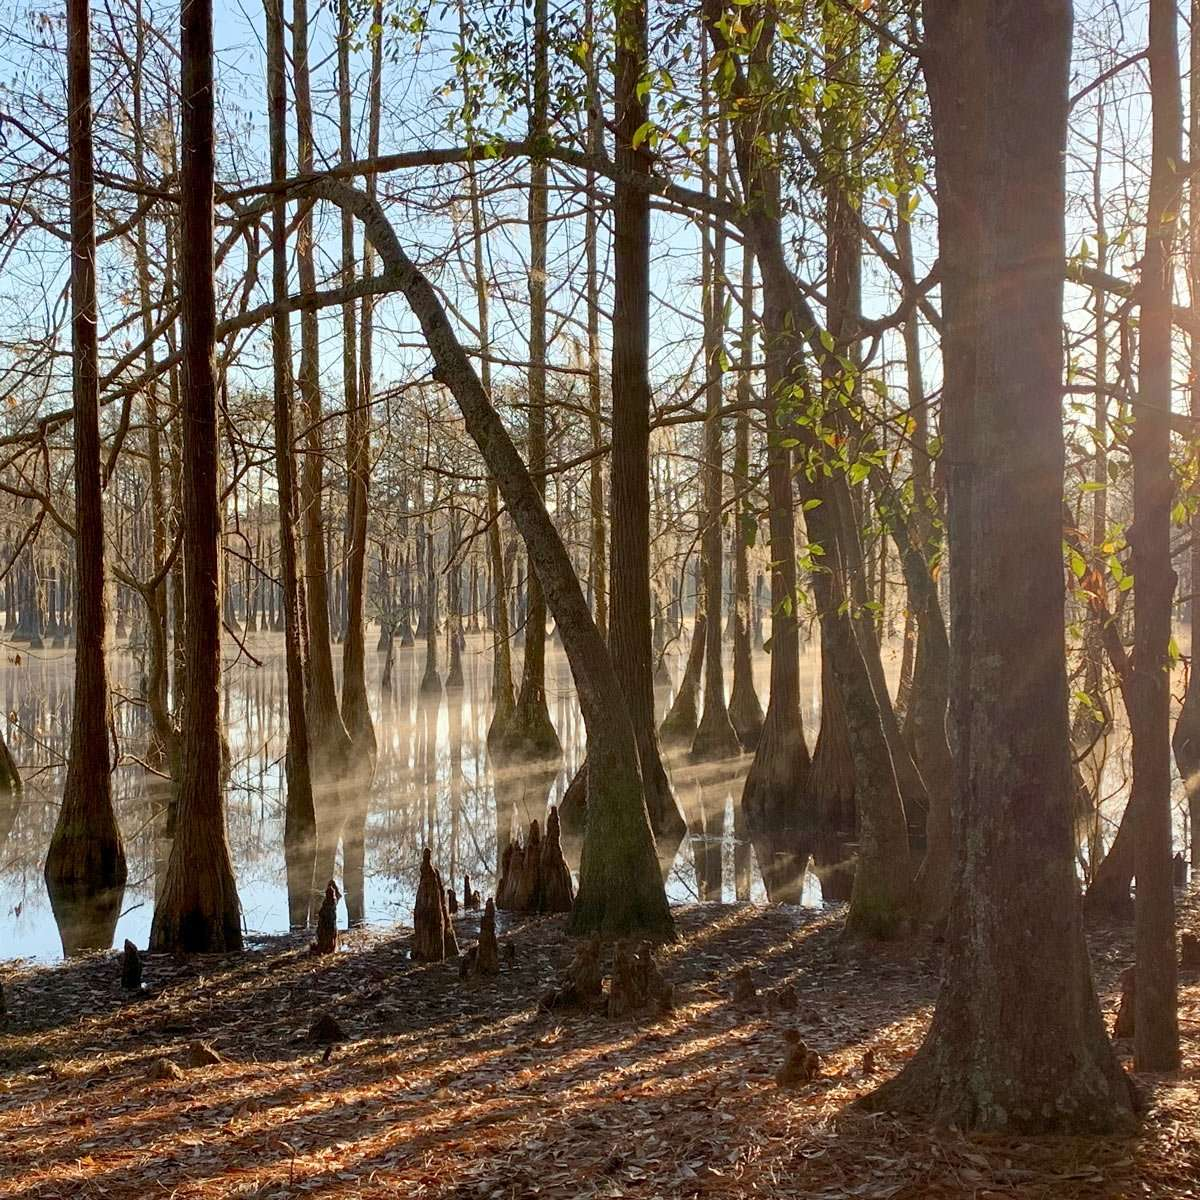 cypress trees knee their way above the surface of a pond created by an 1800s mill